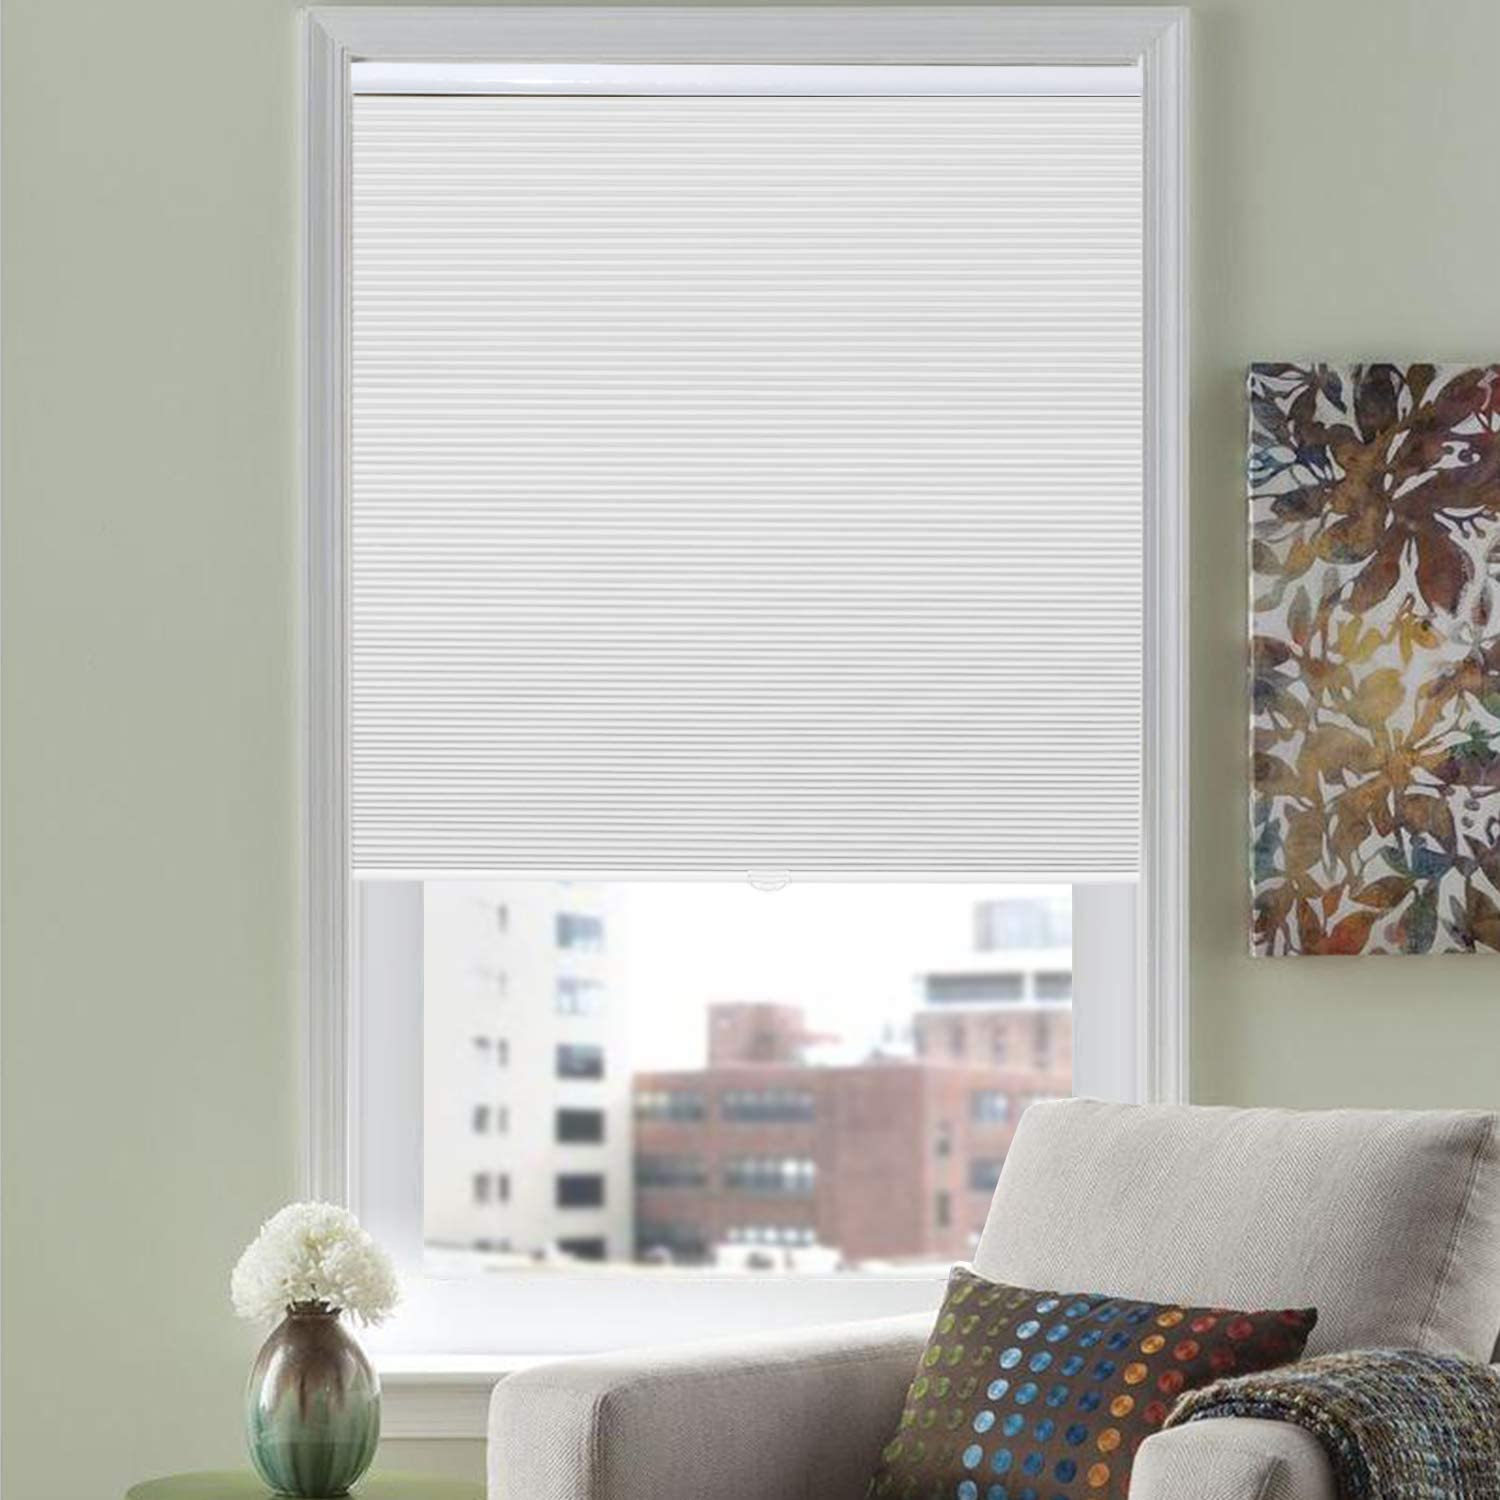 HOMEDEMO Blackout Cellular Shades Cordless Window Blinds and Room Darkening Shades, 24